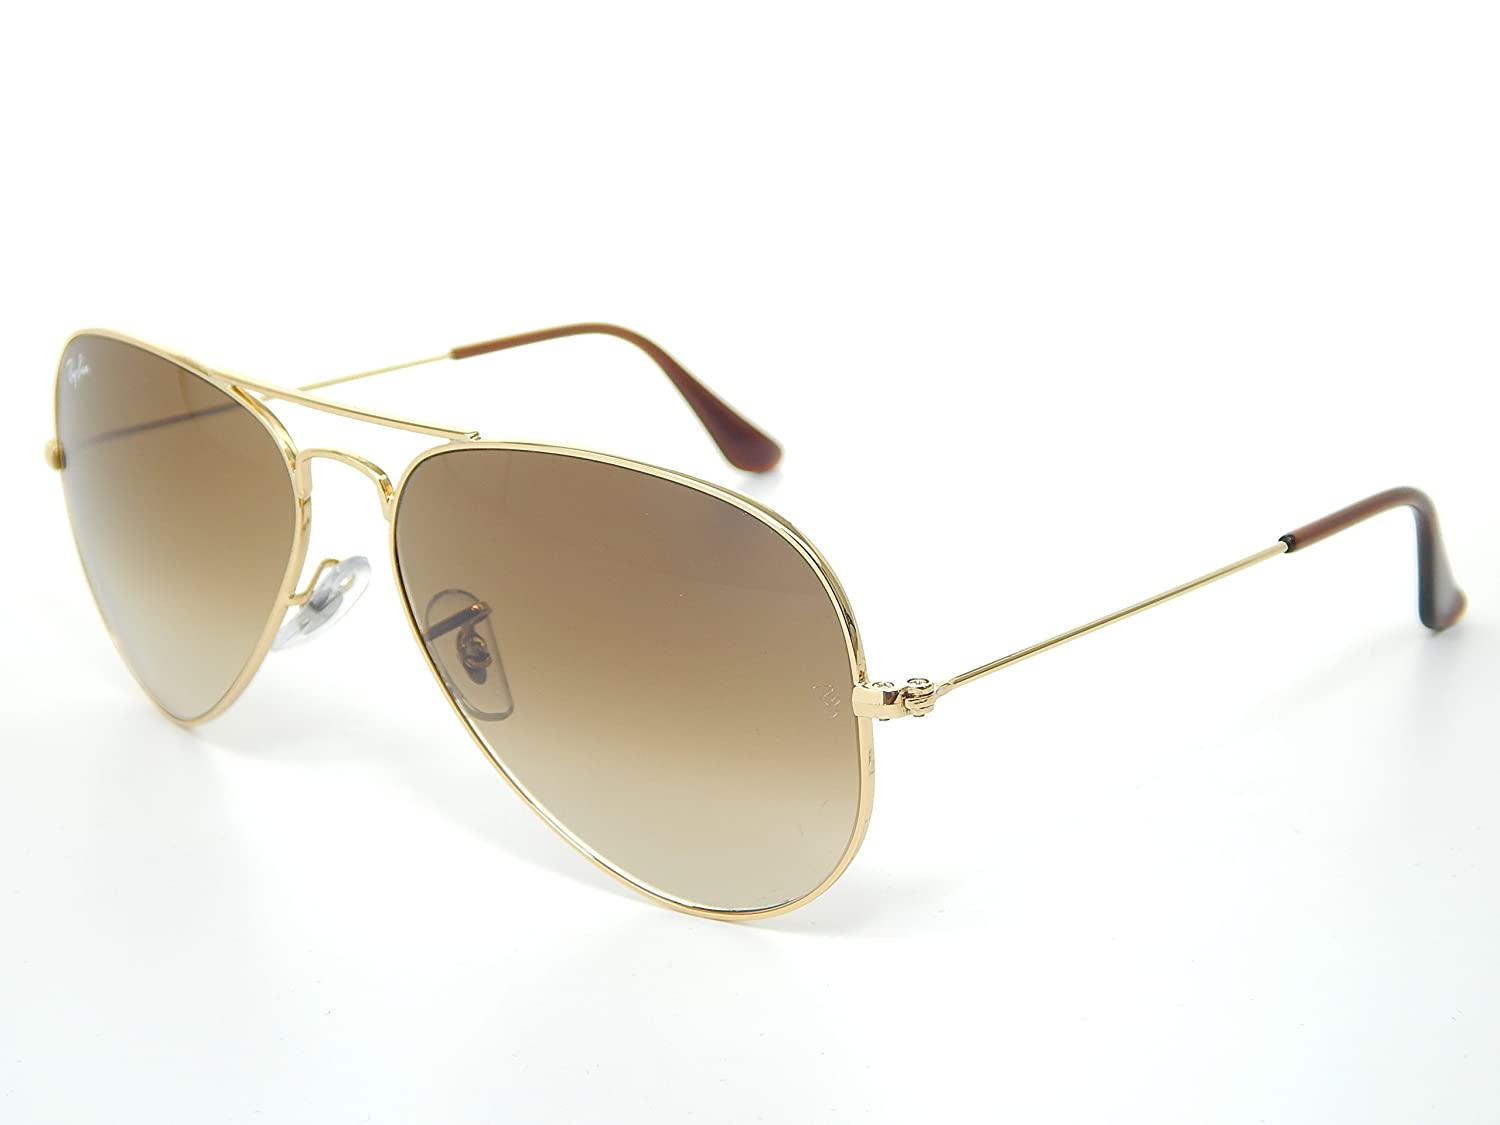 03c409547f0 Amazon.com  Ray-Ban Aviator RB3025 001 51 Arista Crystal Brown Gradient  58mm Sunglasses  Clothing